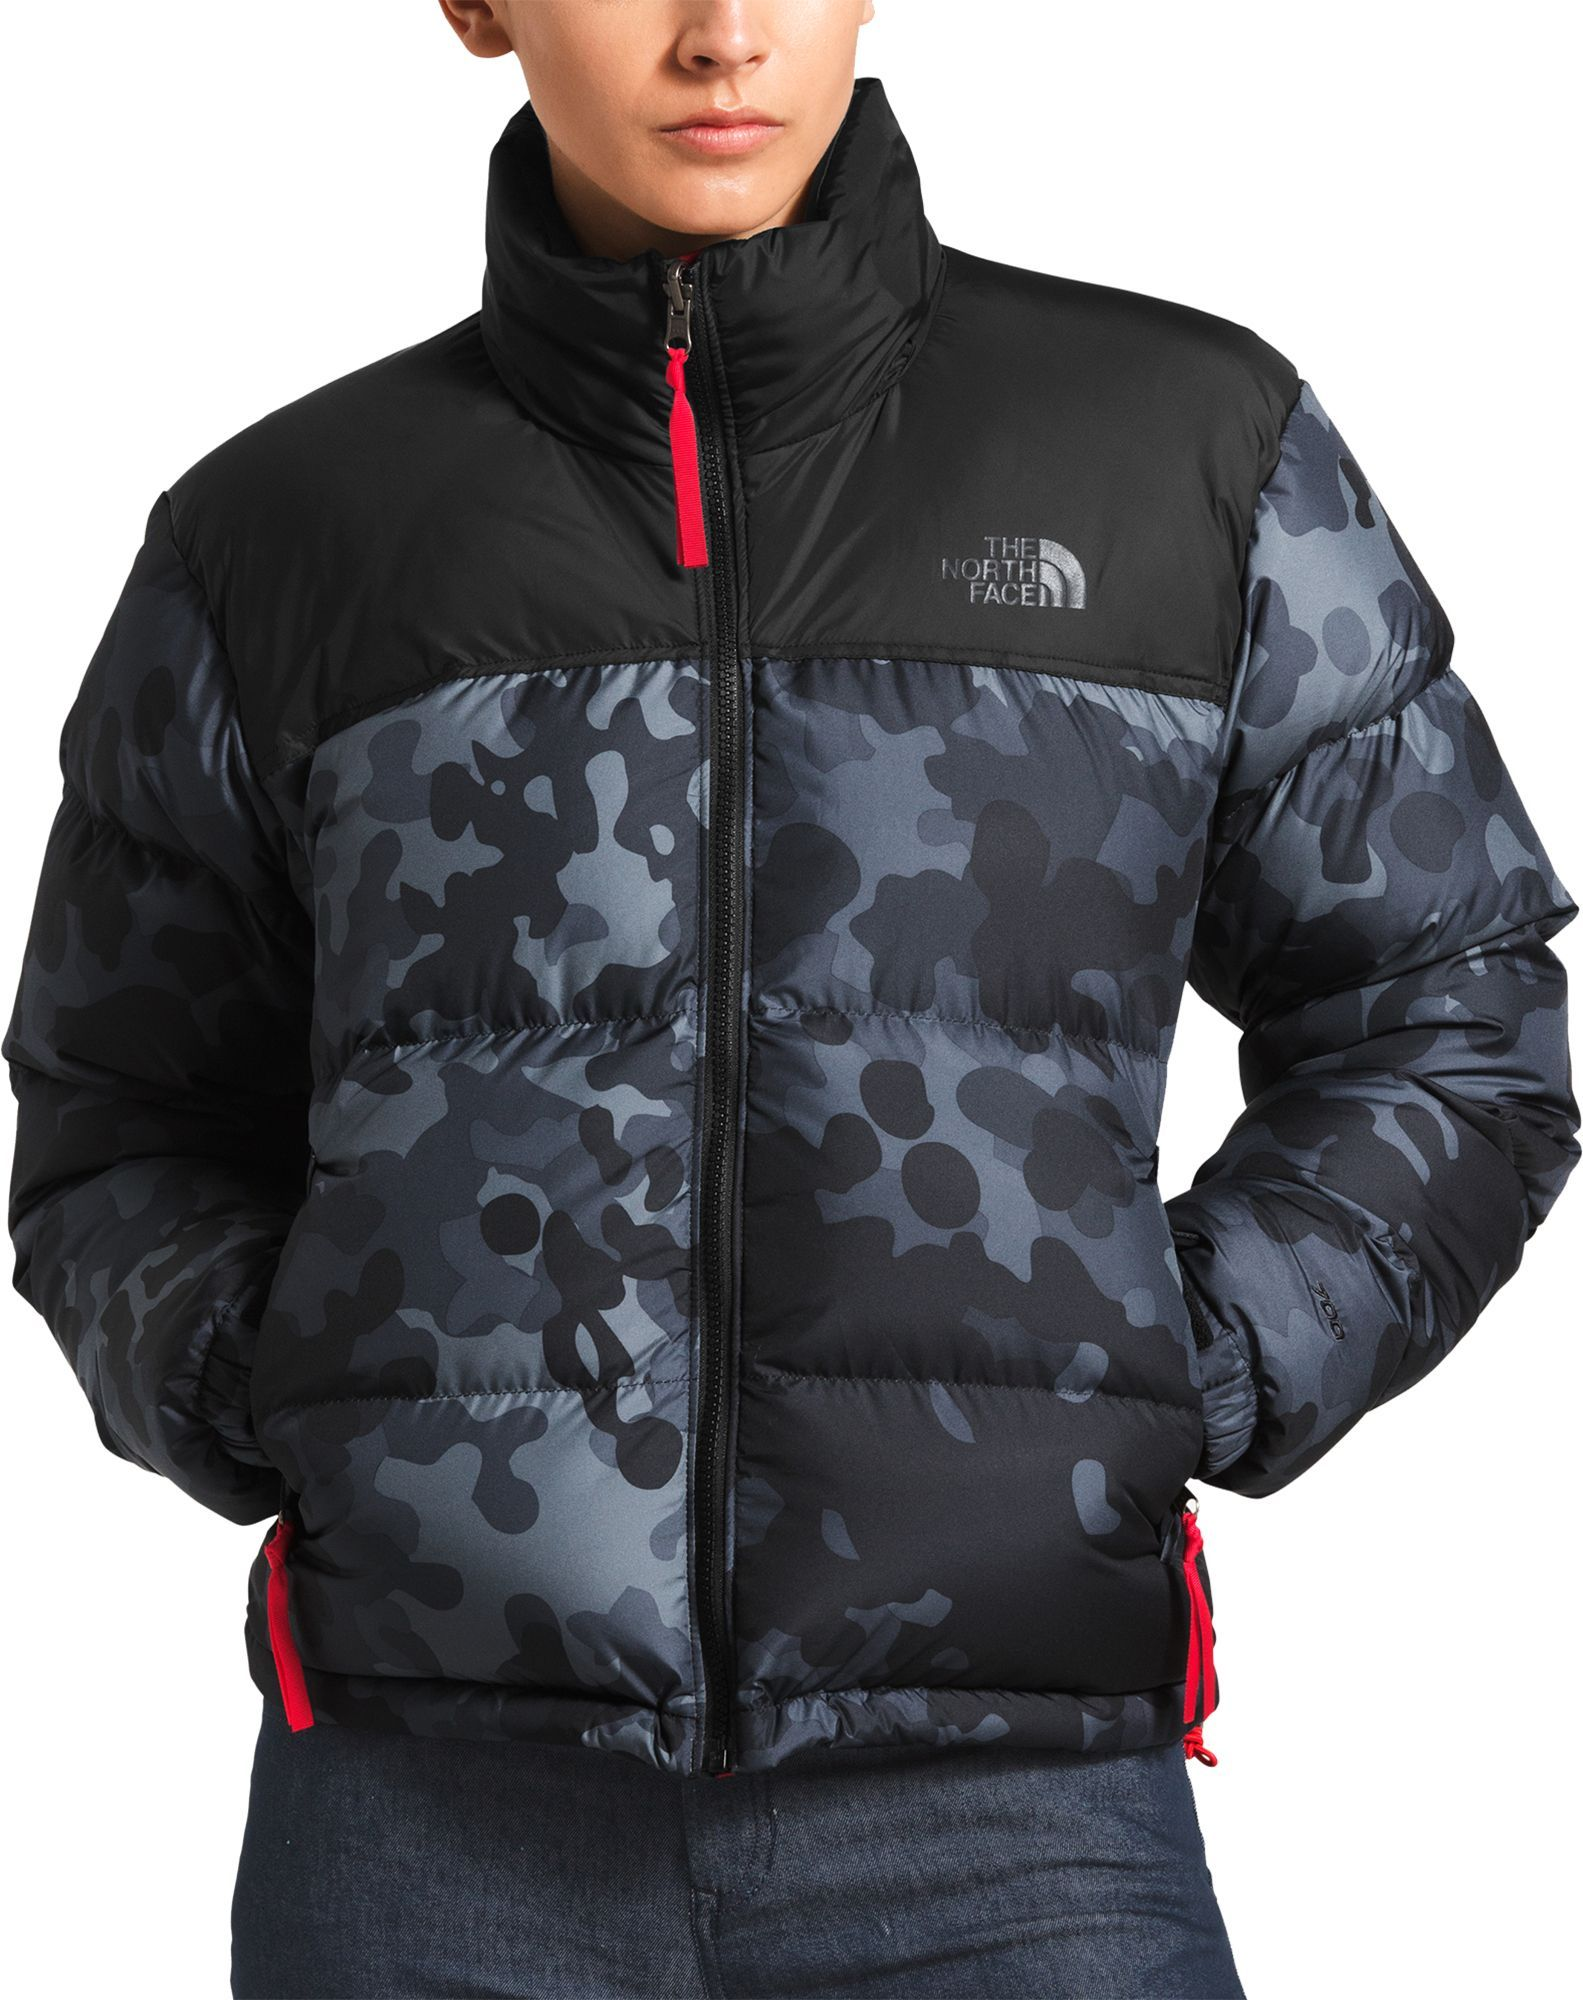 fefb88efd The North Face Women's 1996 Retro Seasonal Nuptse Jacket, Size: XS ...